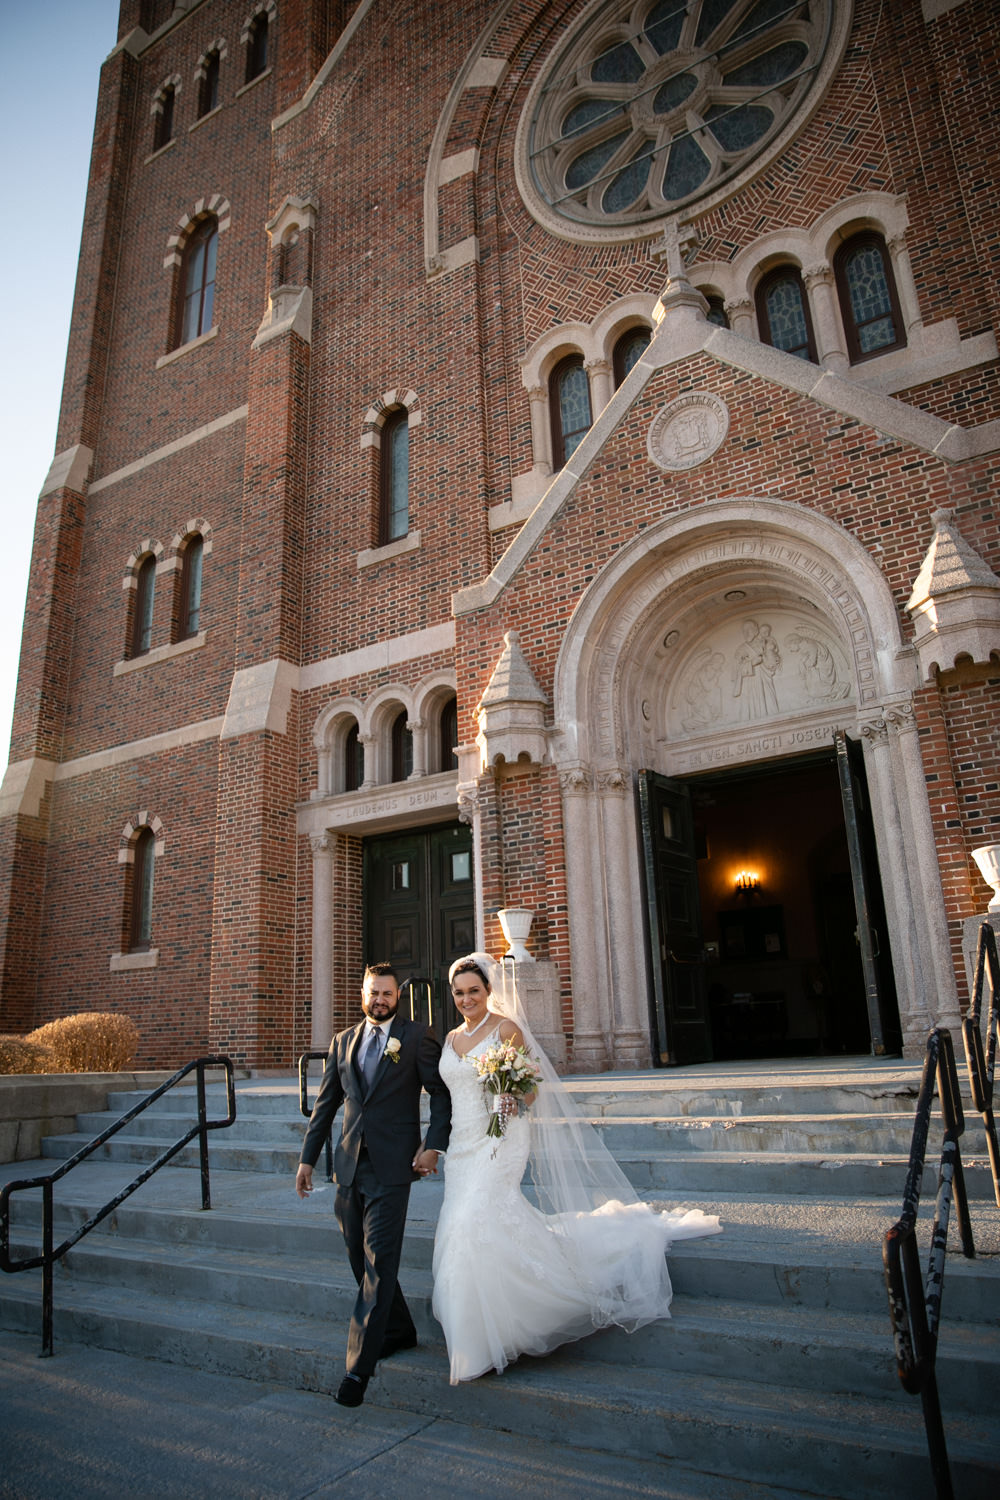 Bride and Groom exiting the Holy Family Parish at St. Joseph's Church wedding